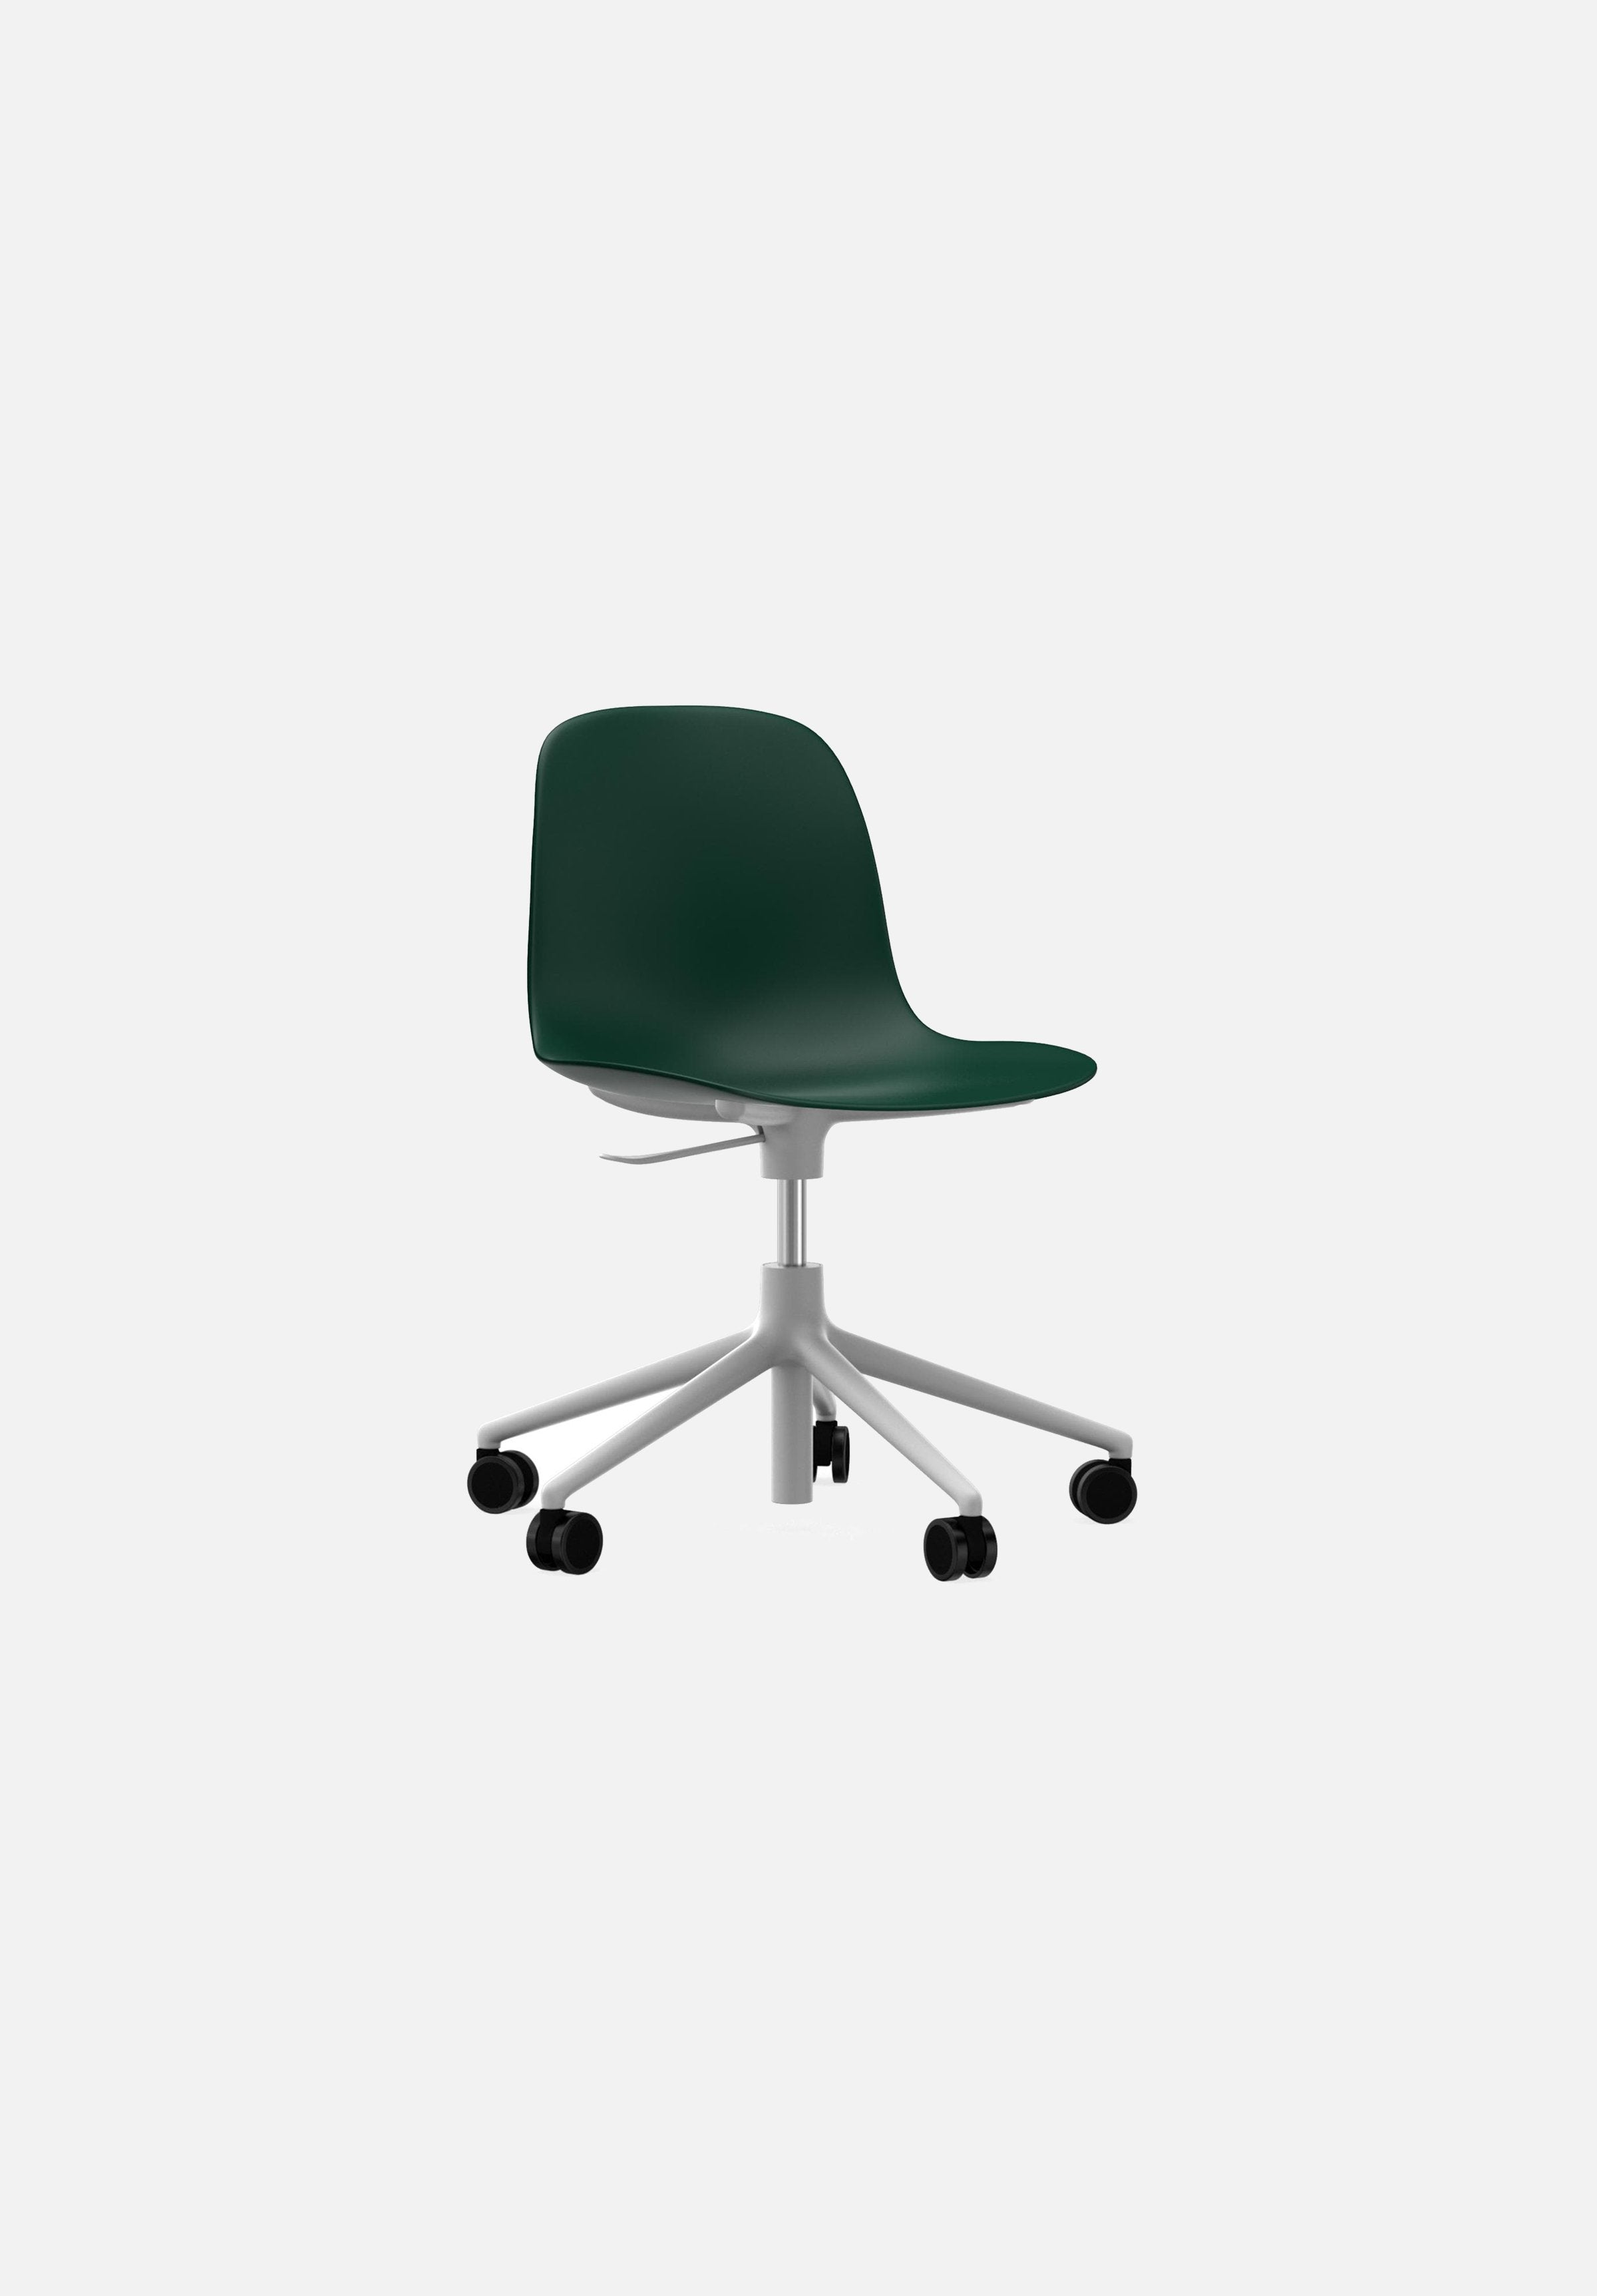 Form Chair — Swivel Gaslift-Simon Legald-Normann Copenhagen-Green-White Aluminum-Average